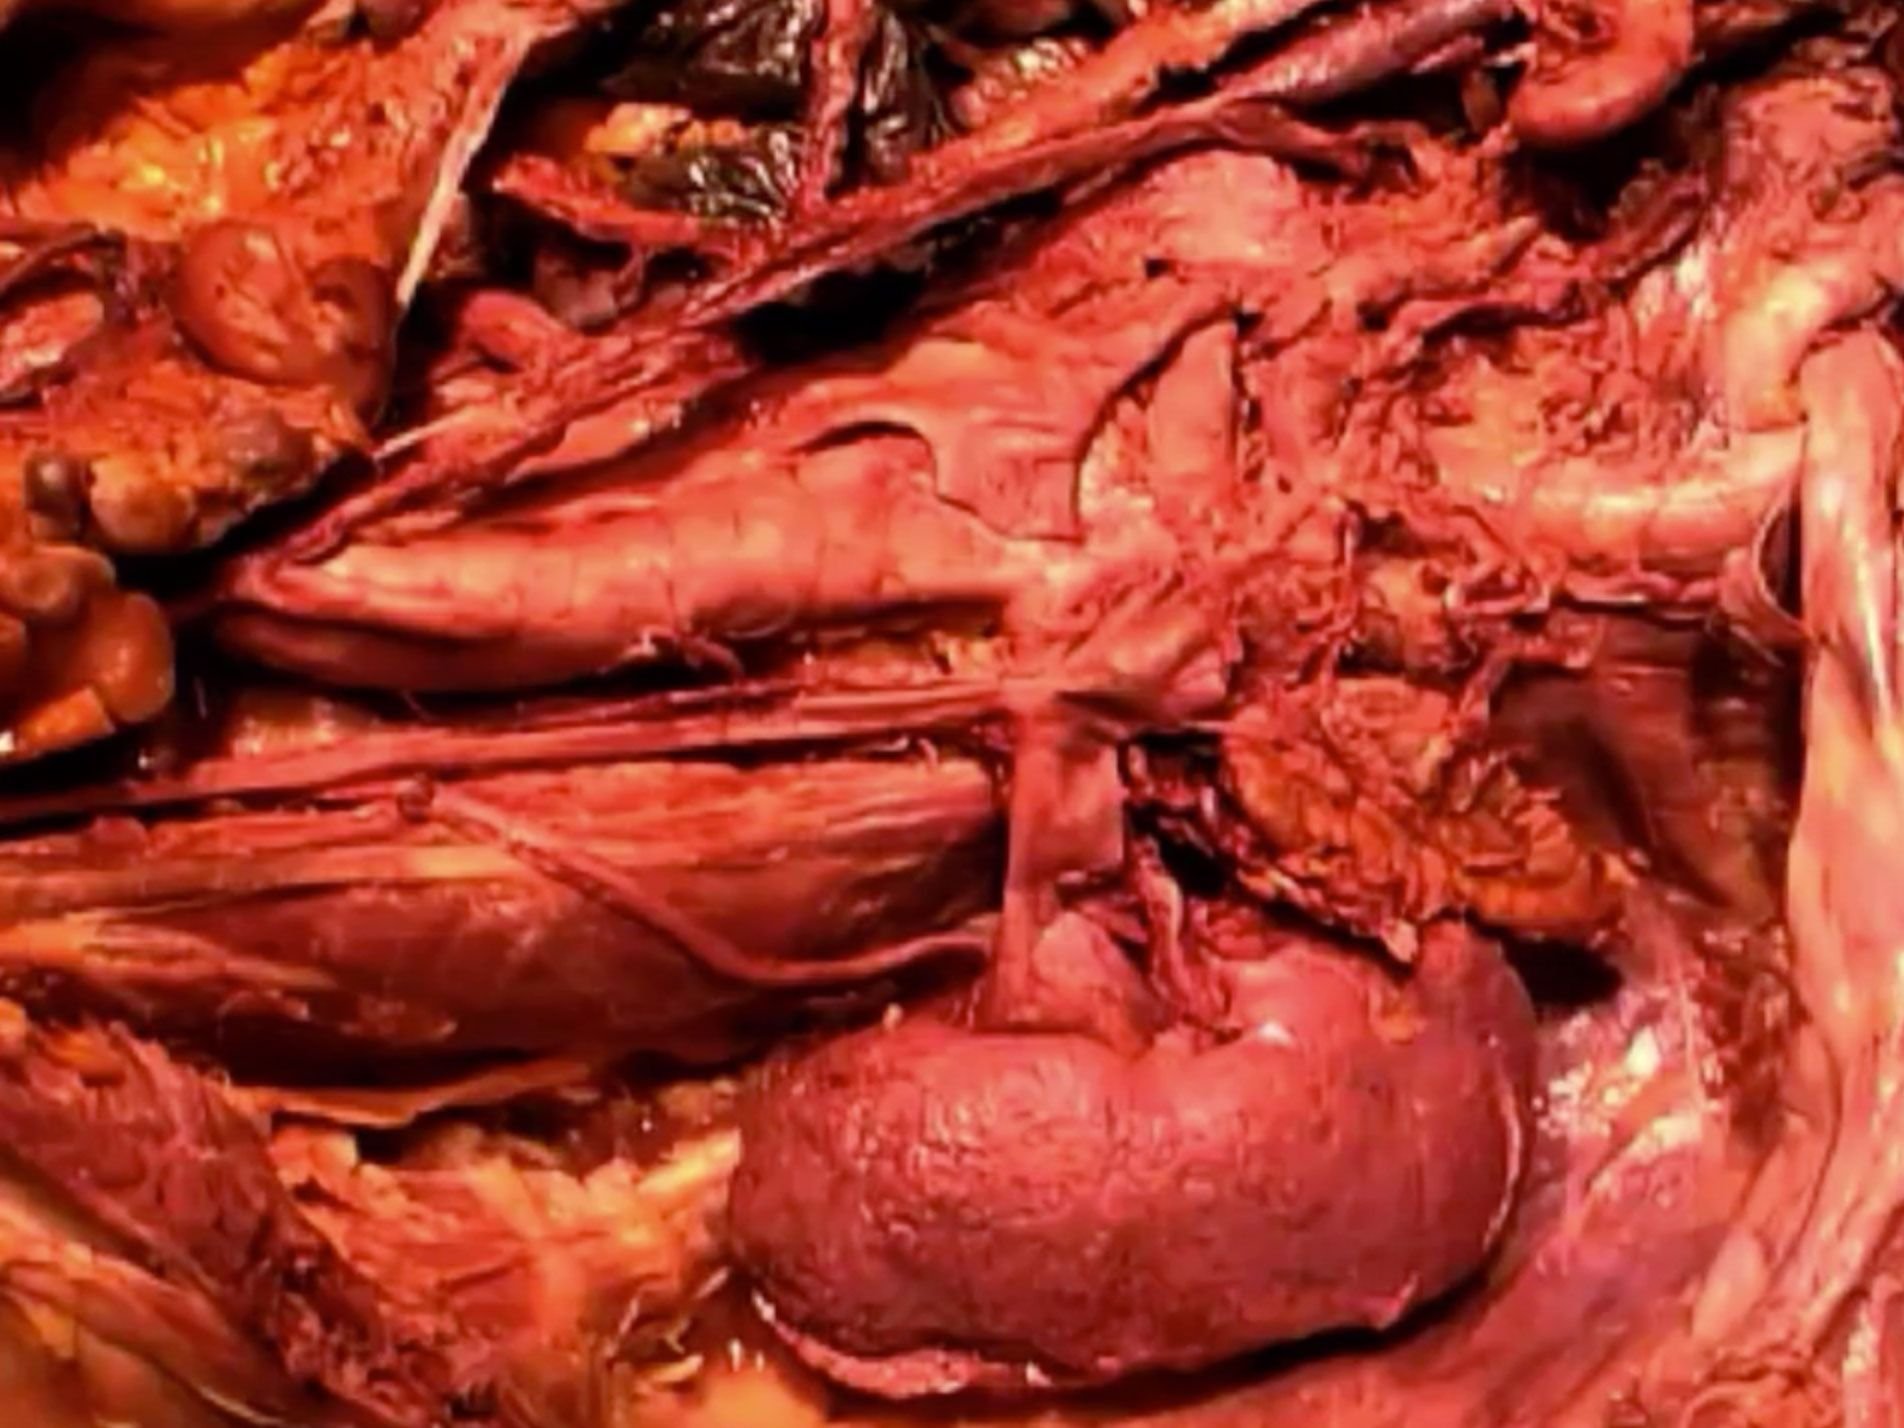 Picture From Dissection 07 Posterior Abdominal Wall Video Anatomy